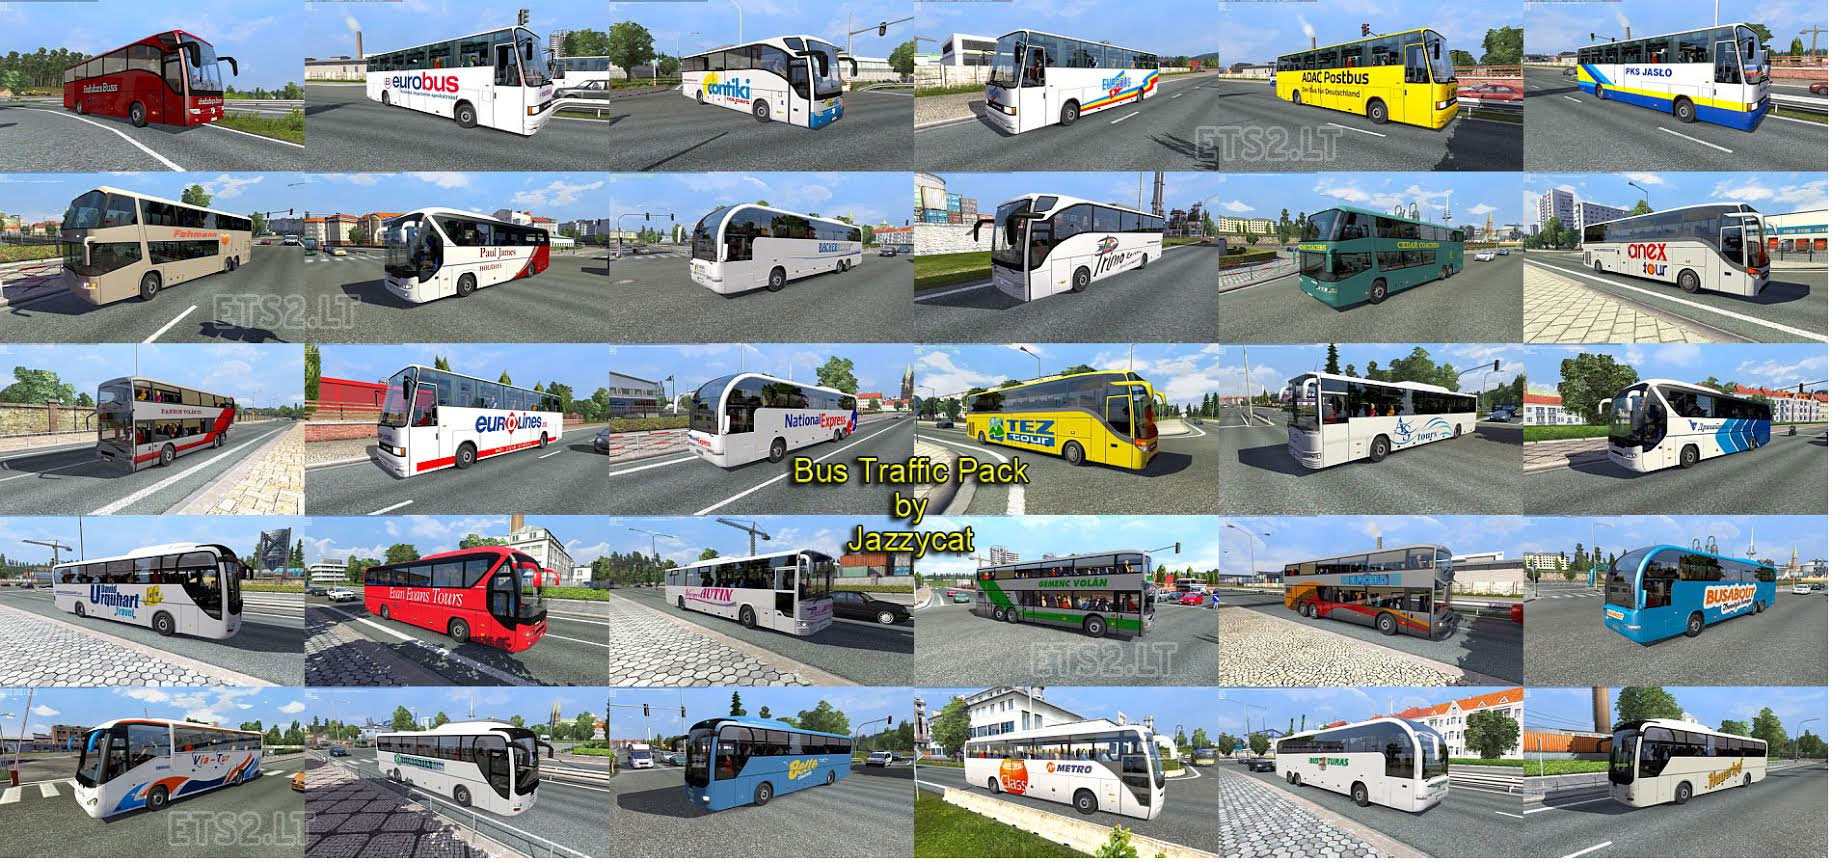 Bus traffic pack by Jazzycat v1 1 | ETS 2 mods